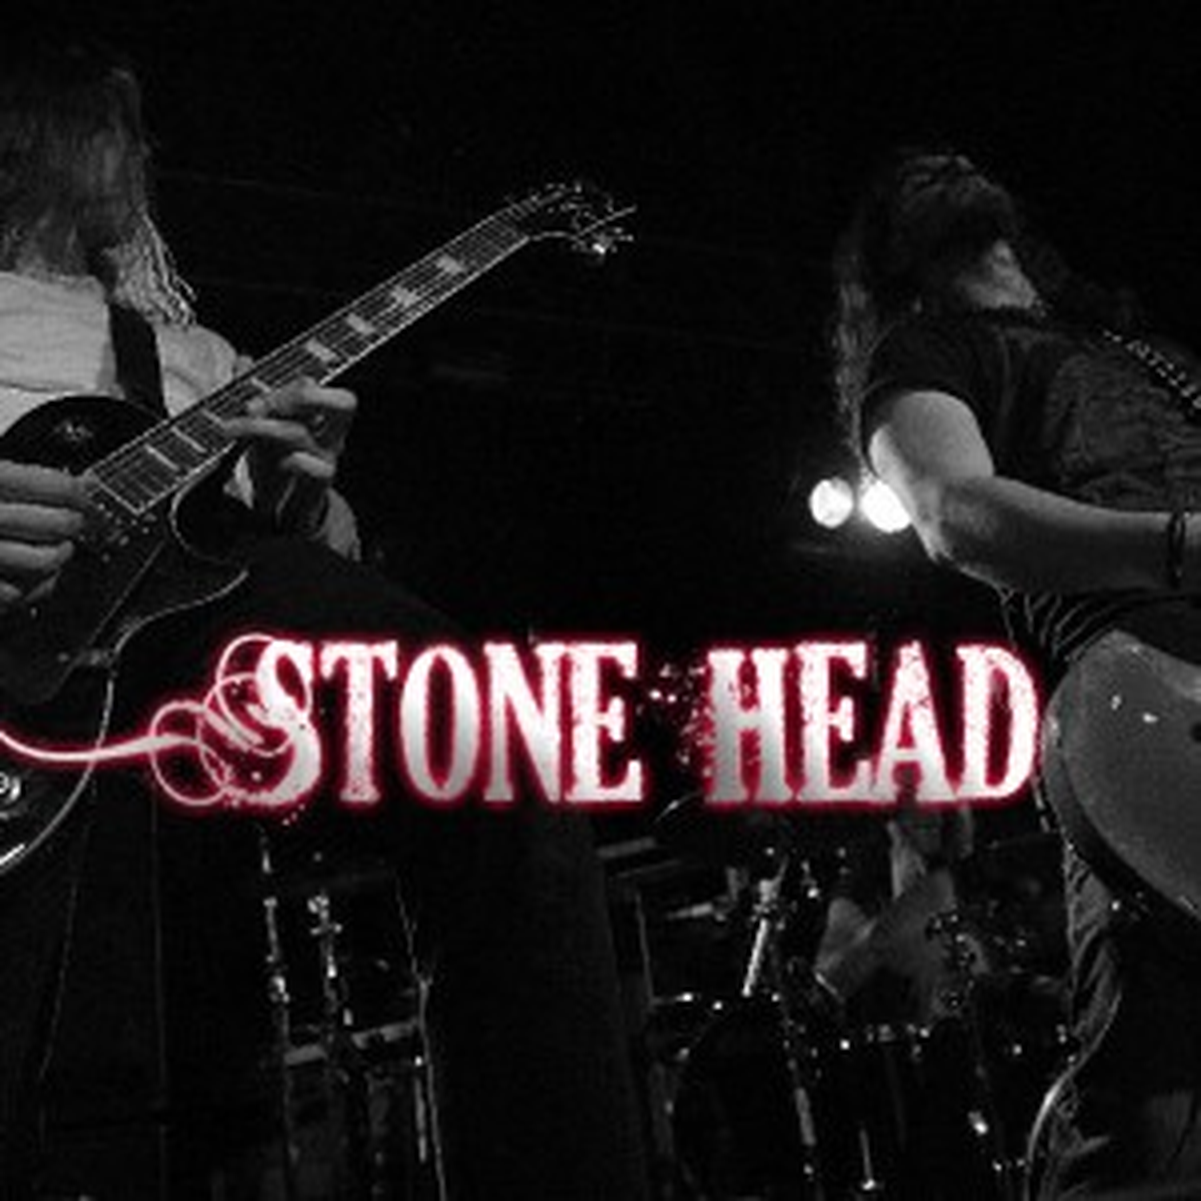 Stone Head wiki, Stone Head review, Stone Head history, Stone Head news